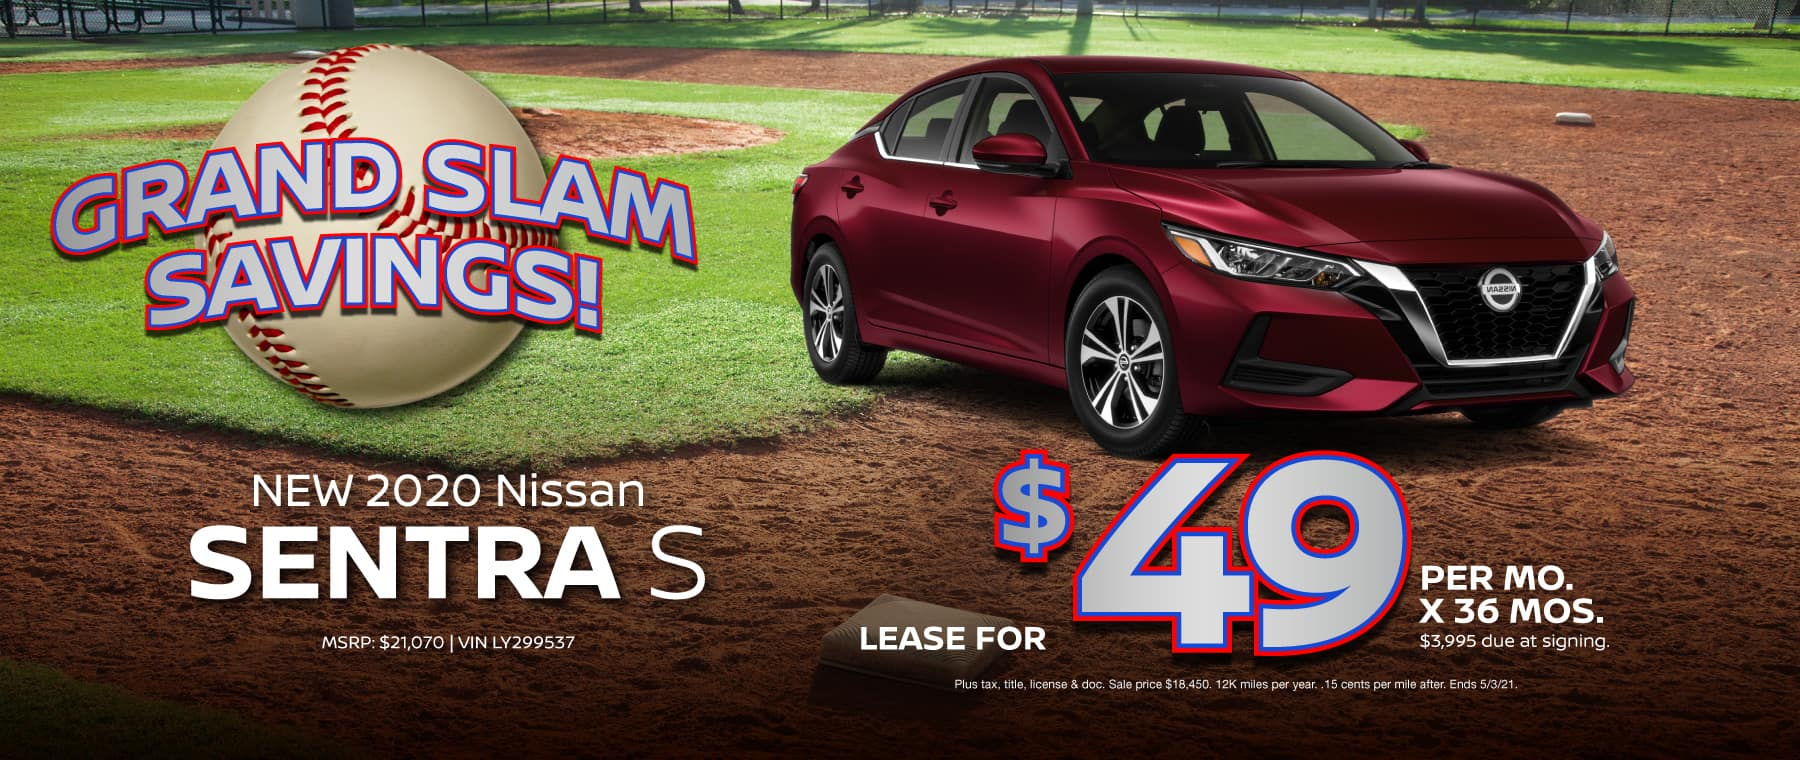 HNSC041521-lease-1800x760_Sentra